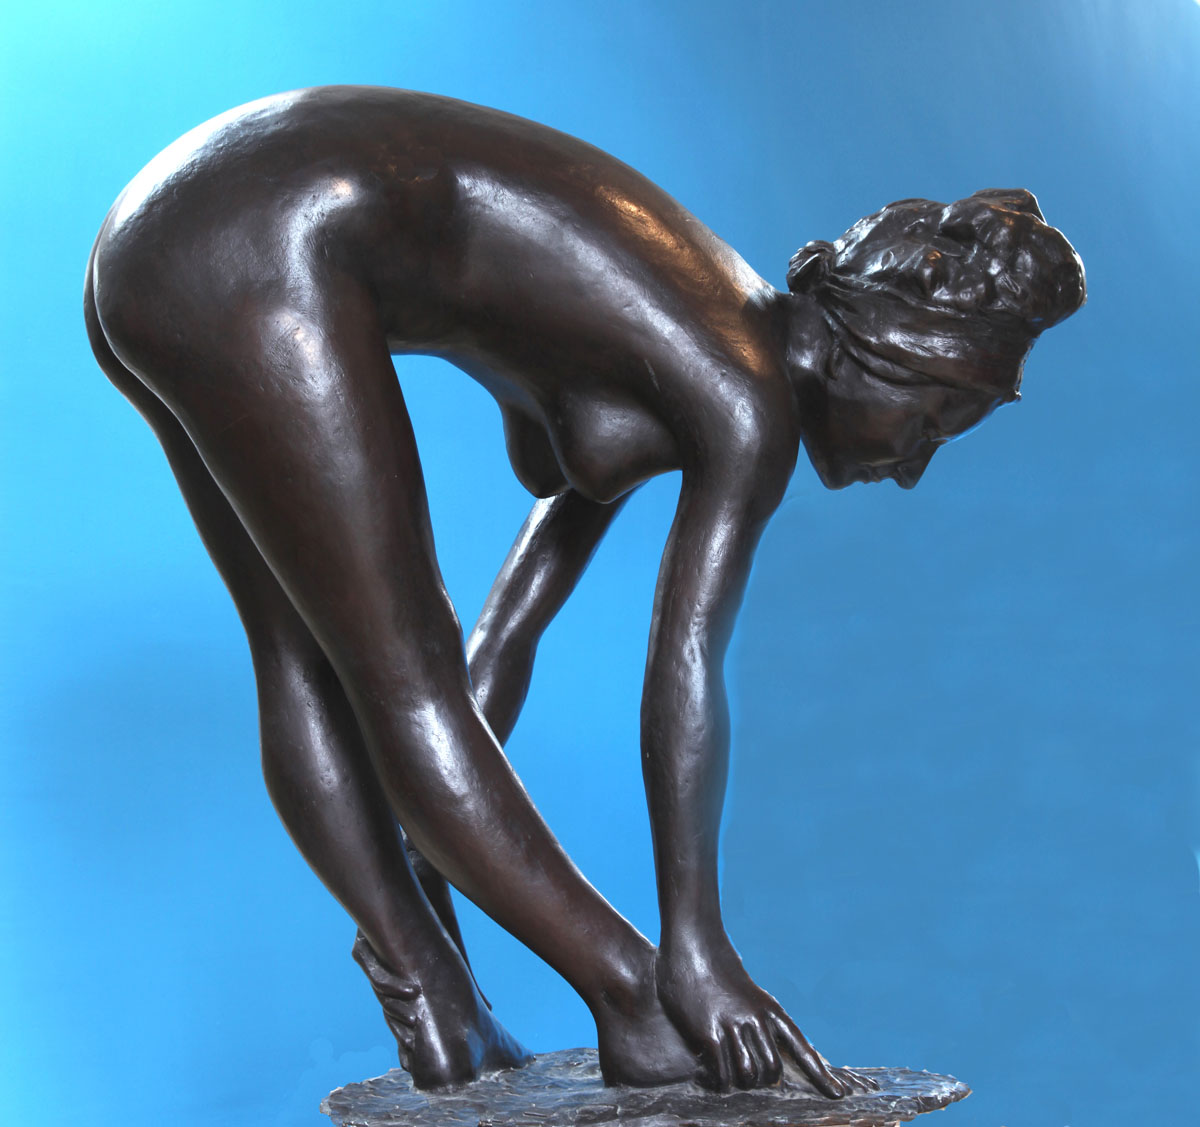 Baigneuse, enzo plazzotta sculpture, bronze